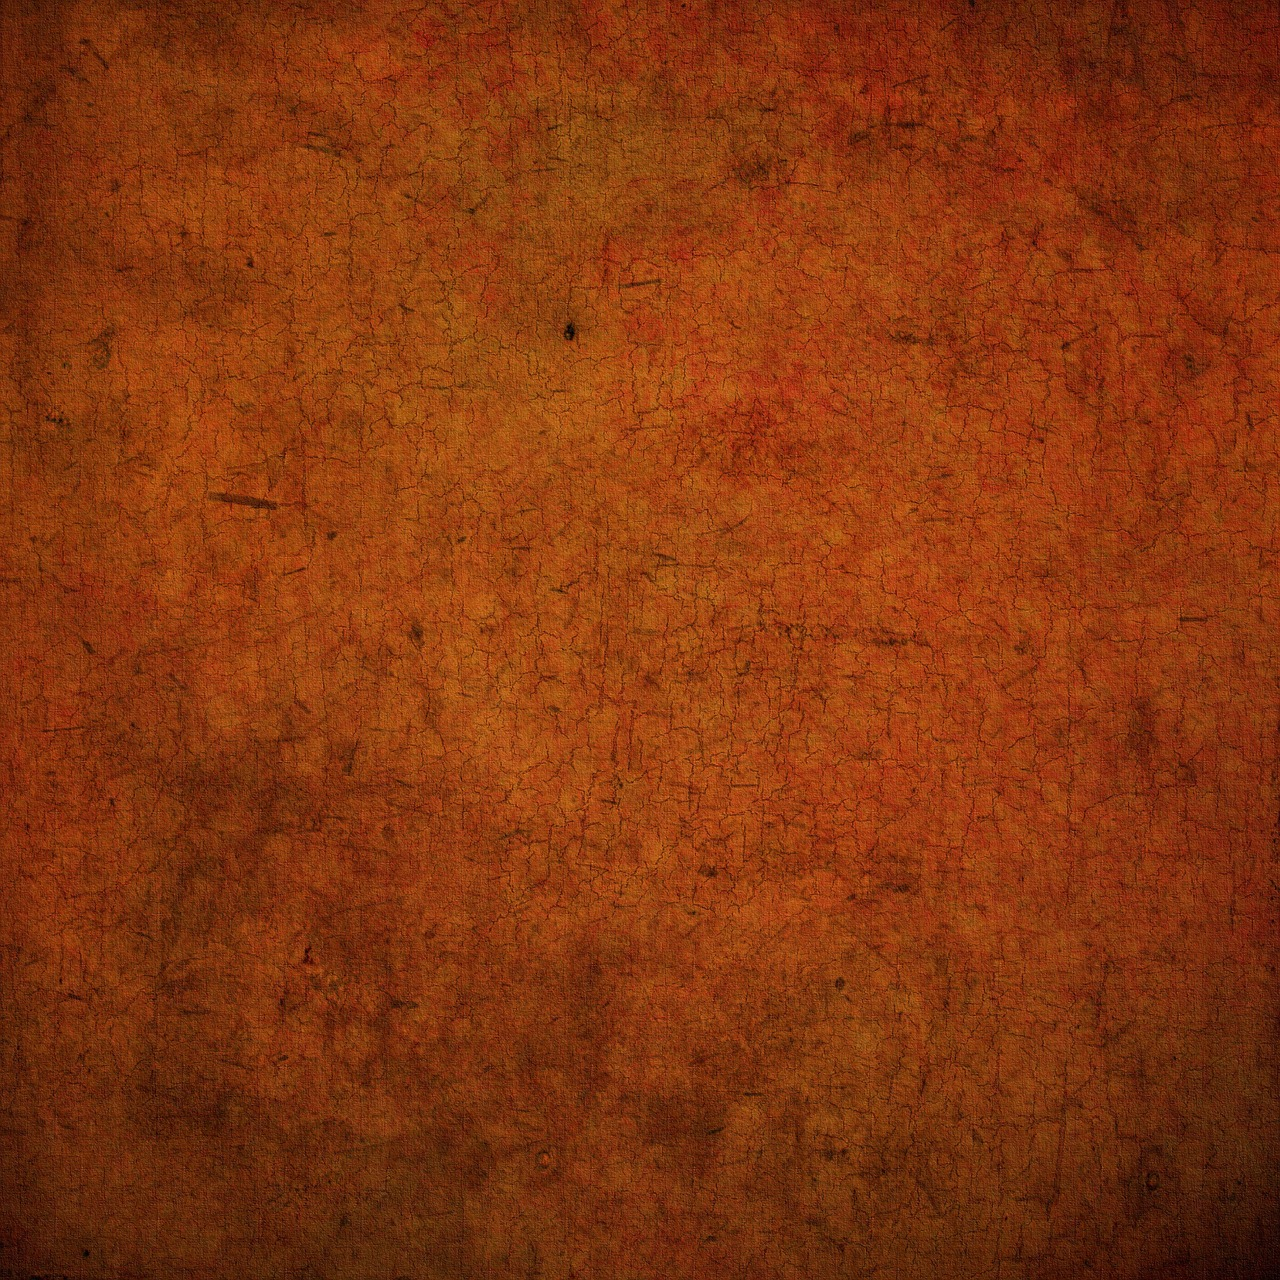 brown rust paper free photo